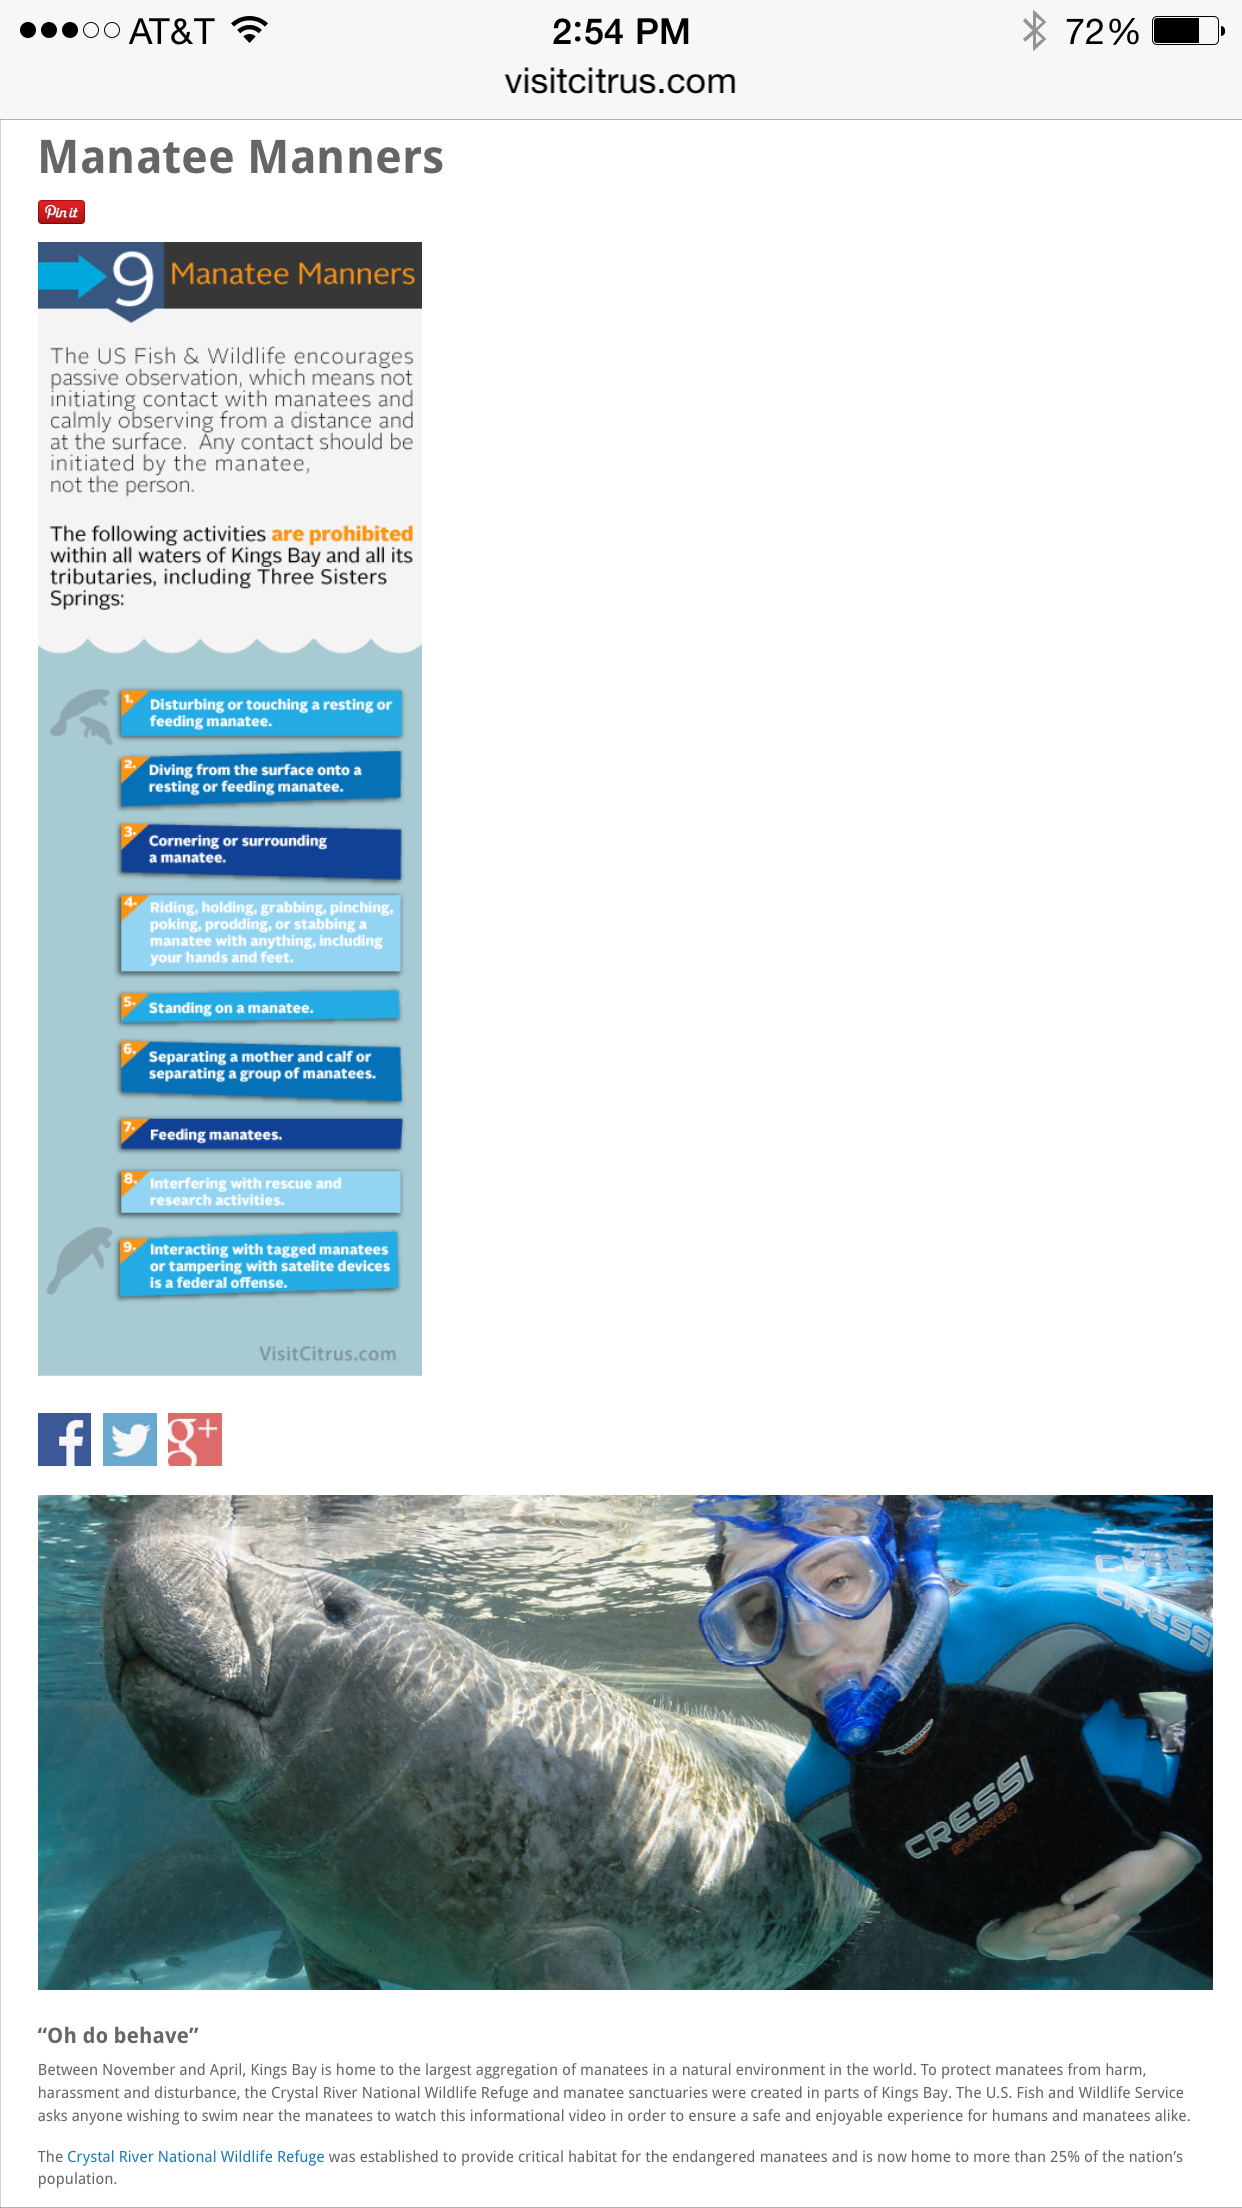 Visit Citrus, screenshot, manatee manners, photos Carol Grant,